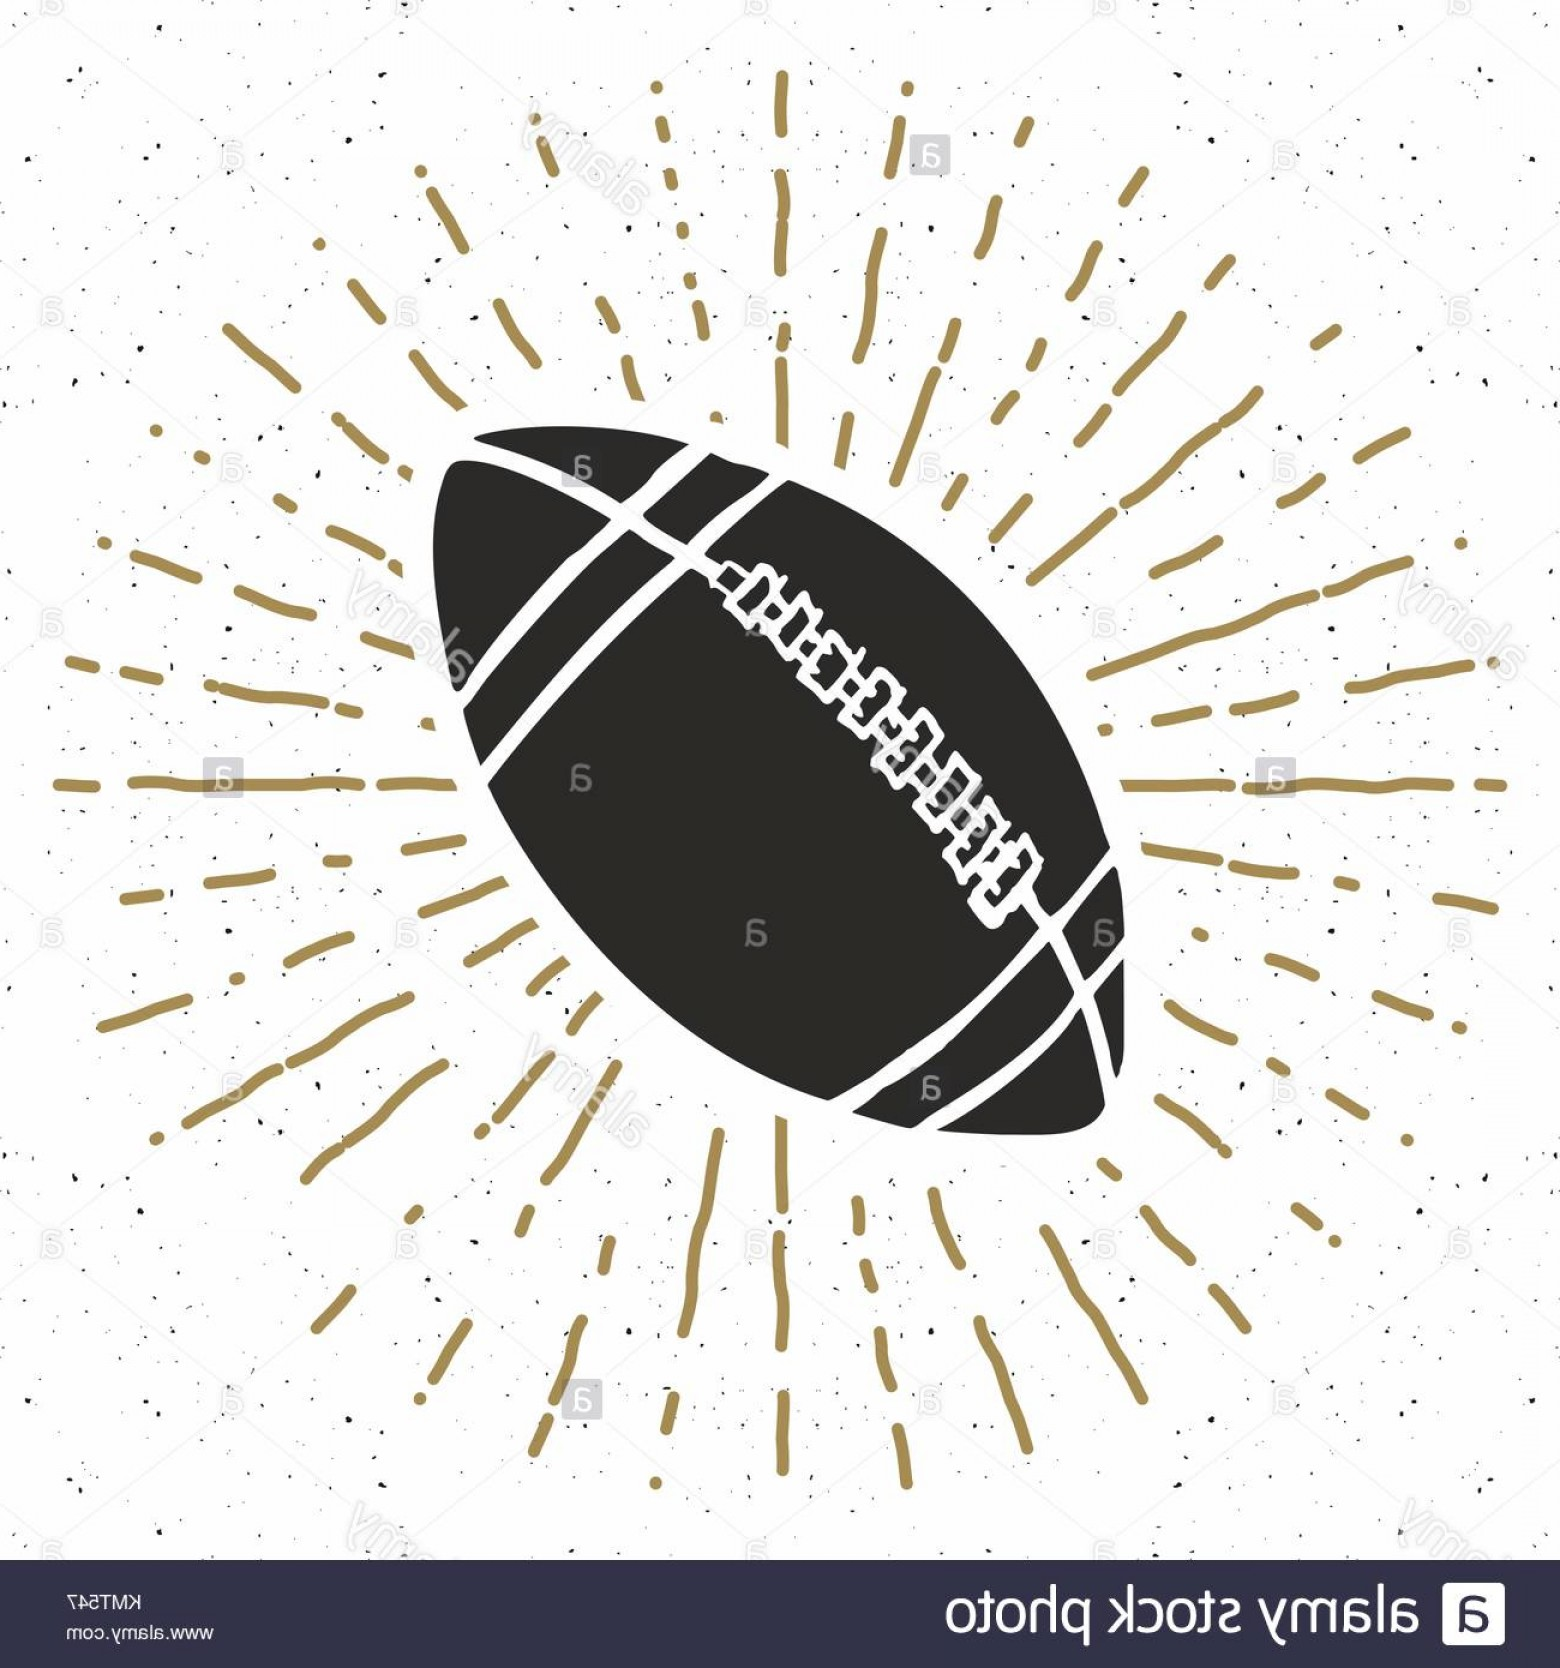 Vector Football Laces And Lines: Stock Photo Vintage Label Hand Drawn Football Soccer Ball Sketch Grunge Textured